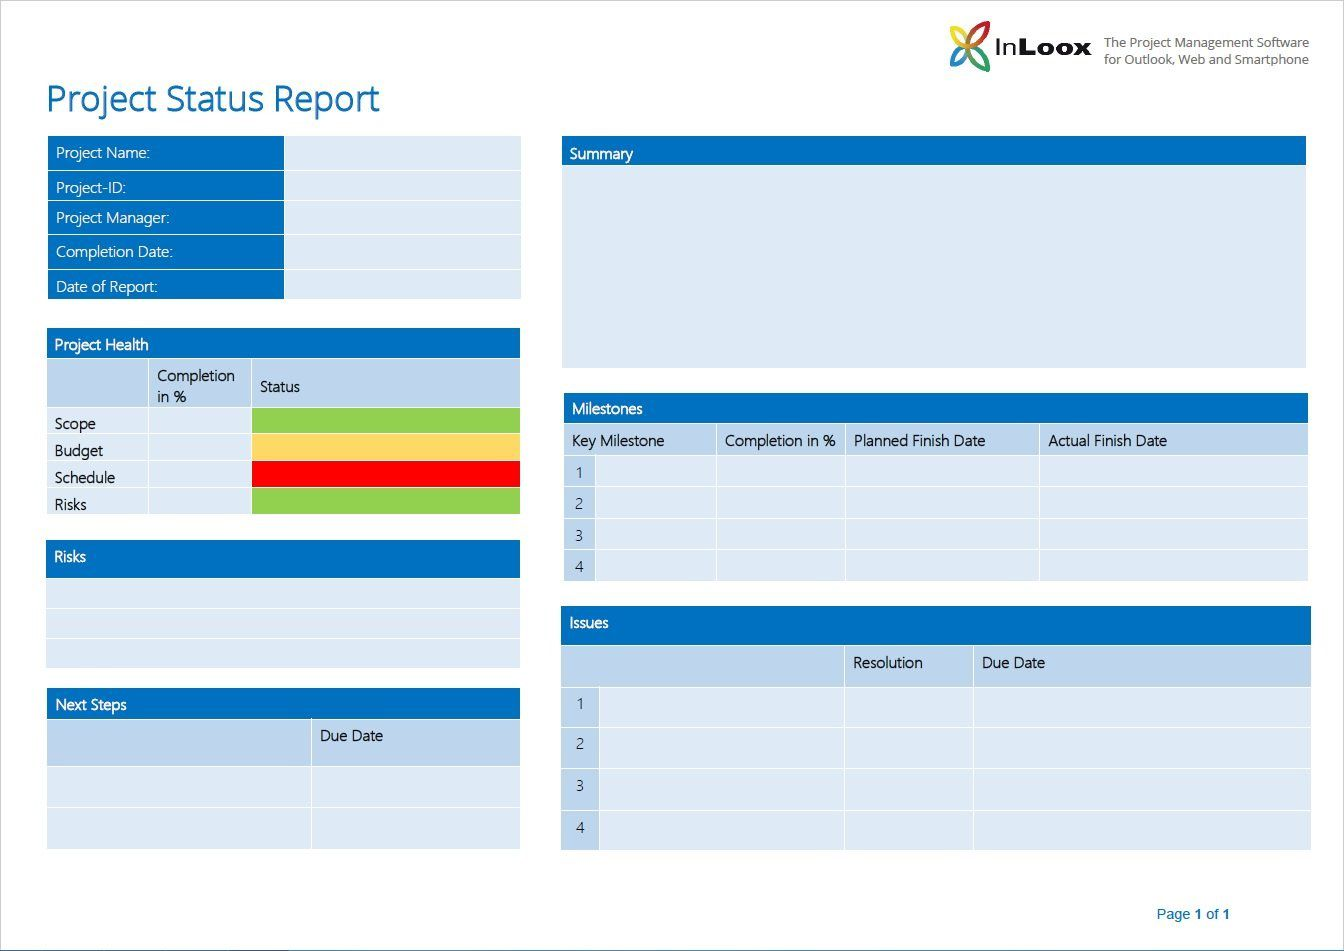 006 Stunning Project Management Progres Report Example  Statu Template Monthly Weekly PptFull